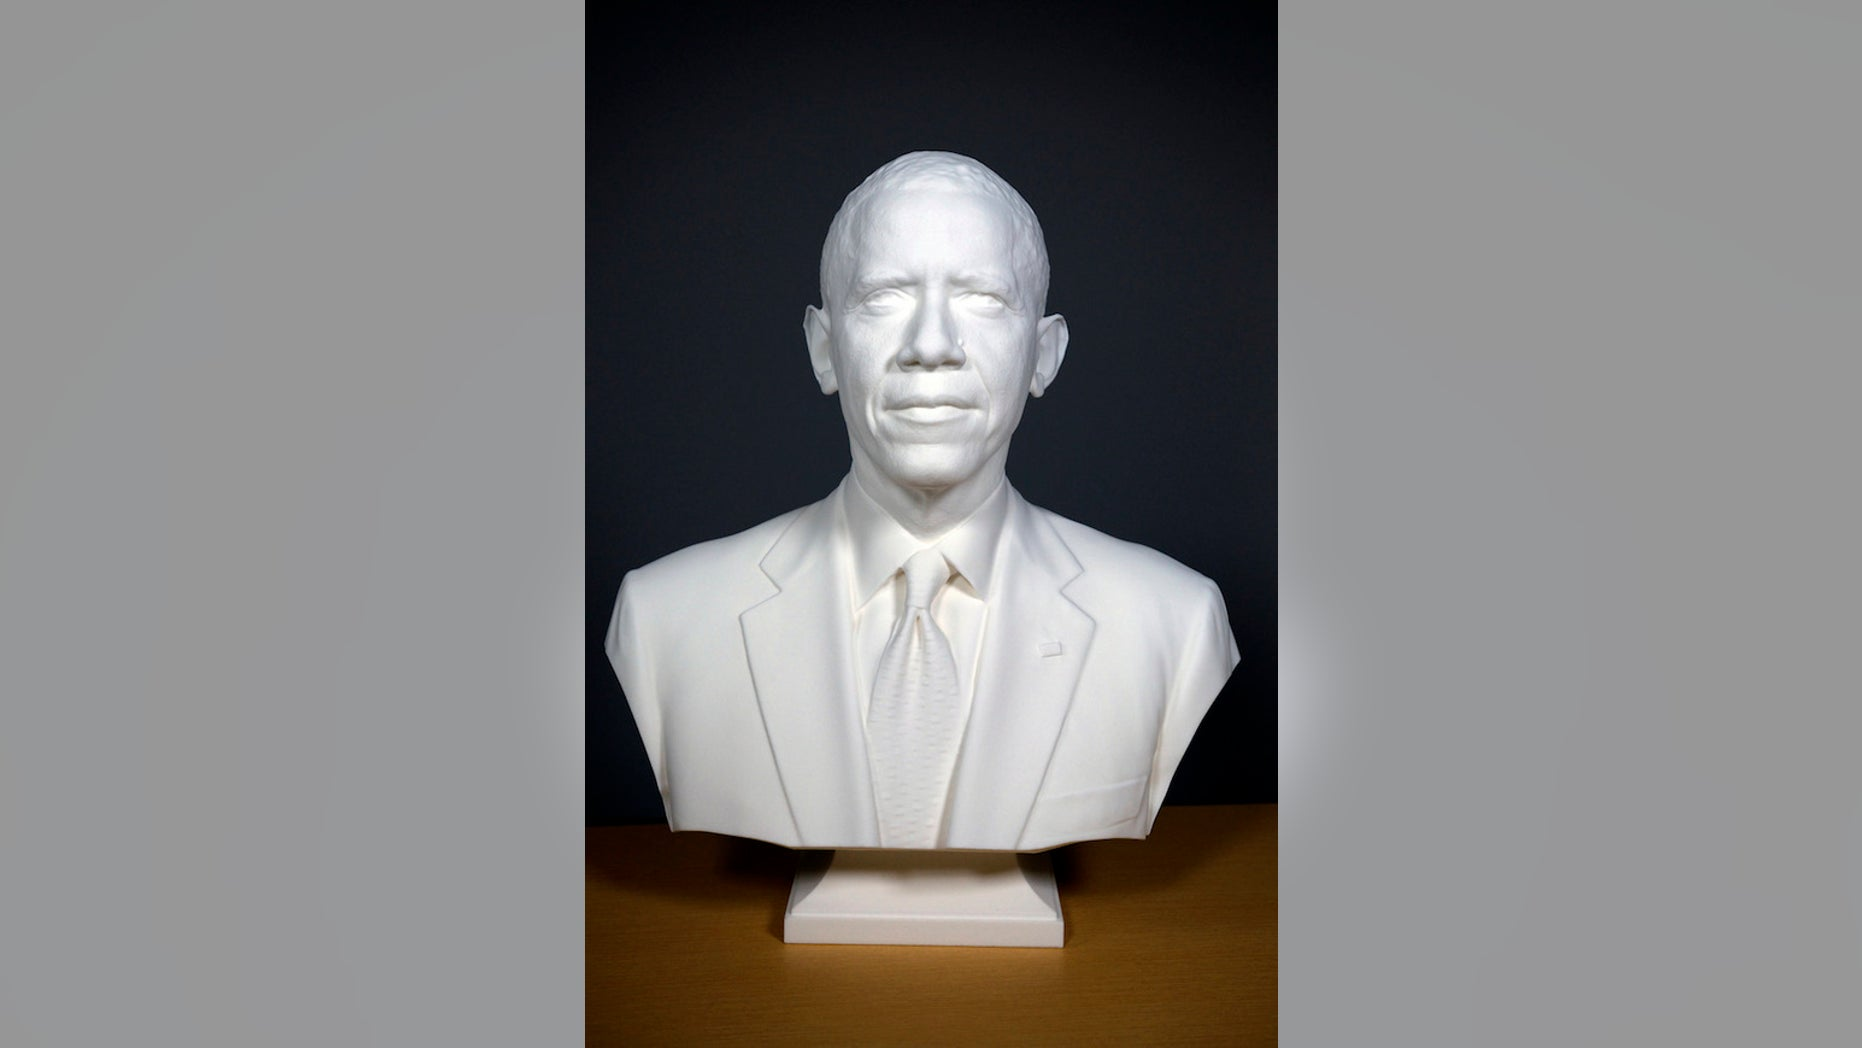 Barack Obama will have an unusual addition to the National Portrait Gallery.